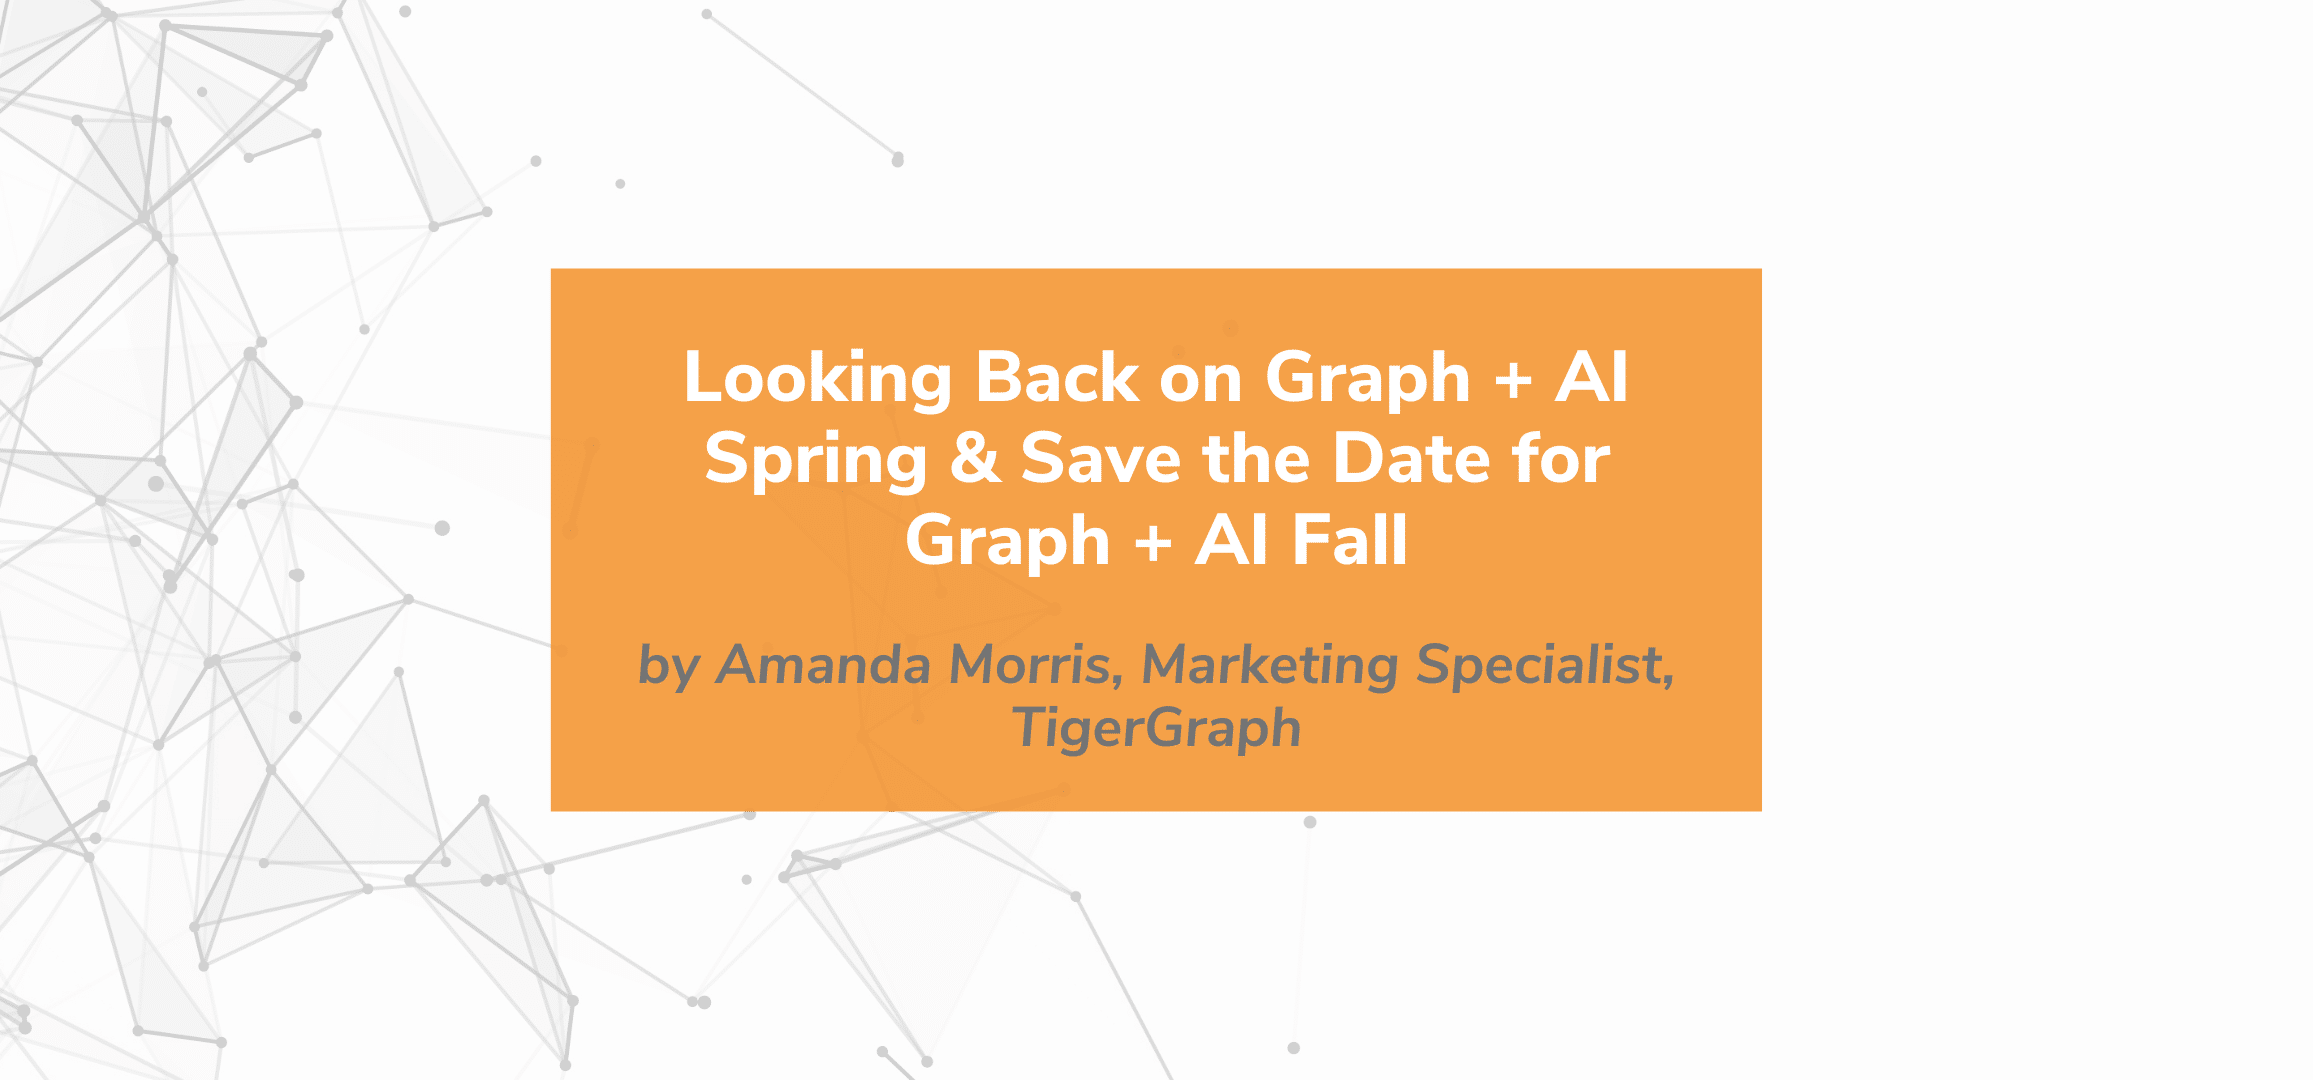 Looking Back on Graph + AI Spring & Save the Date for Graph + AI Fall